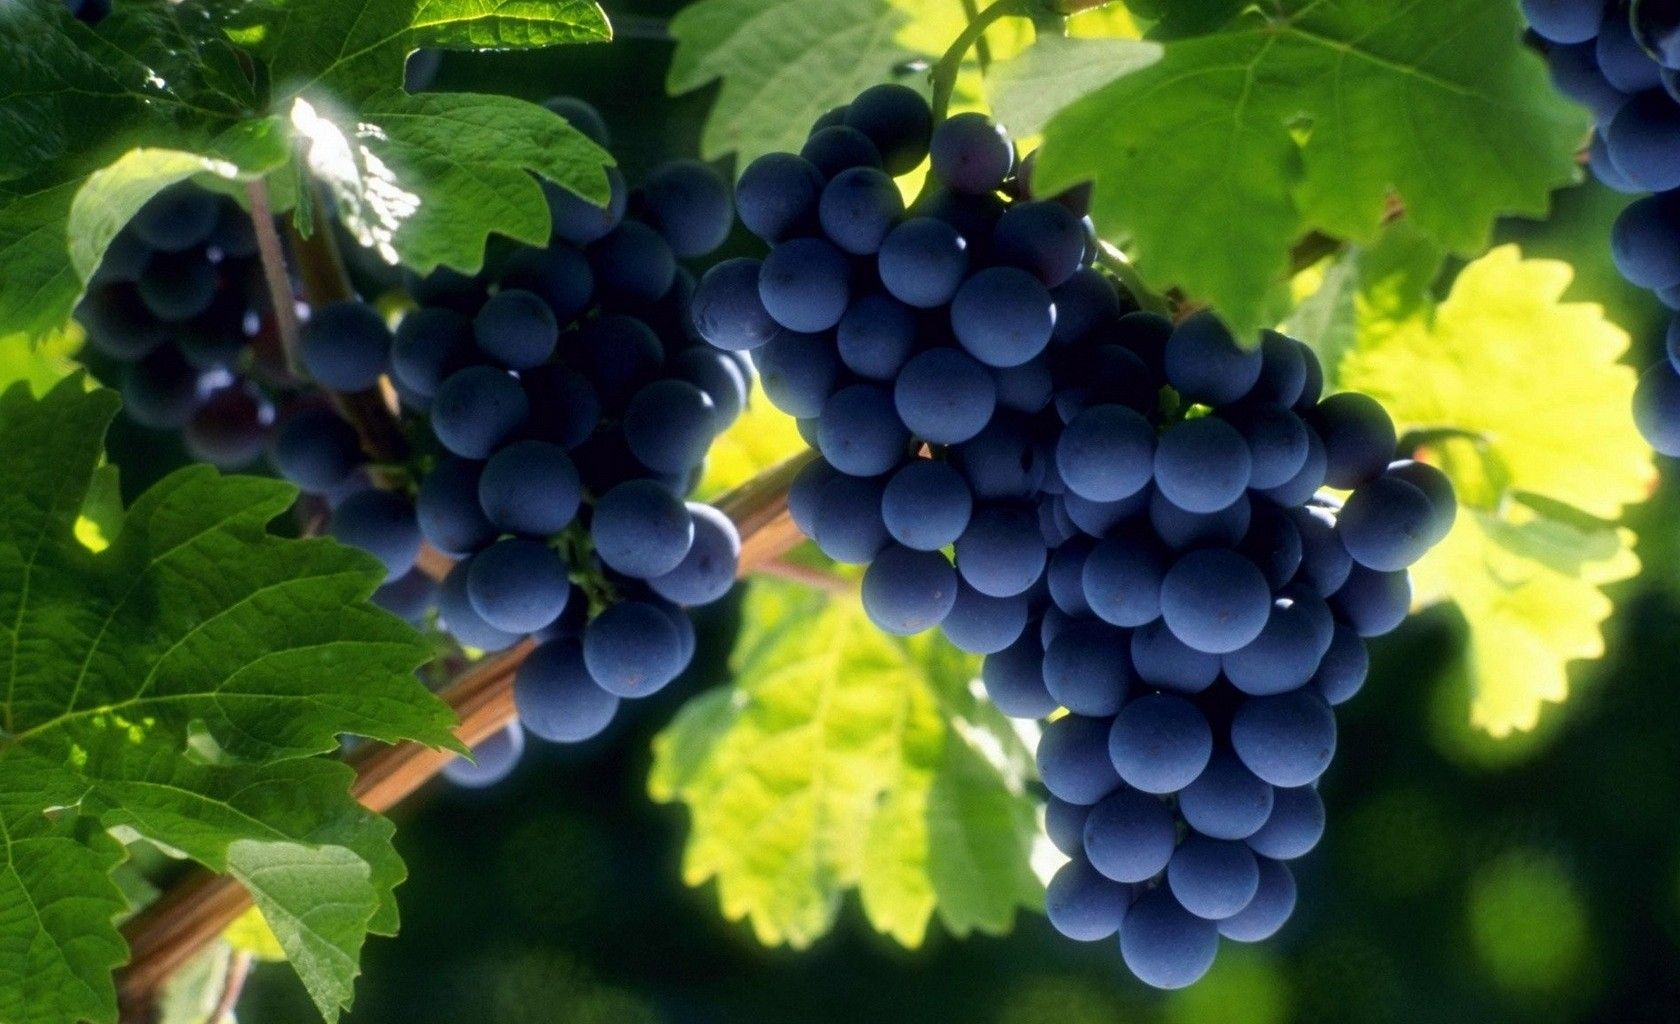 Grapes Fruit Wallpapers HD very Wonderful and Interesting ...